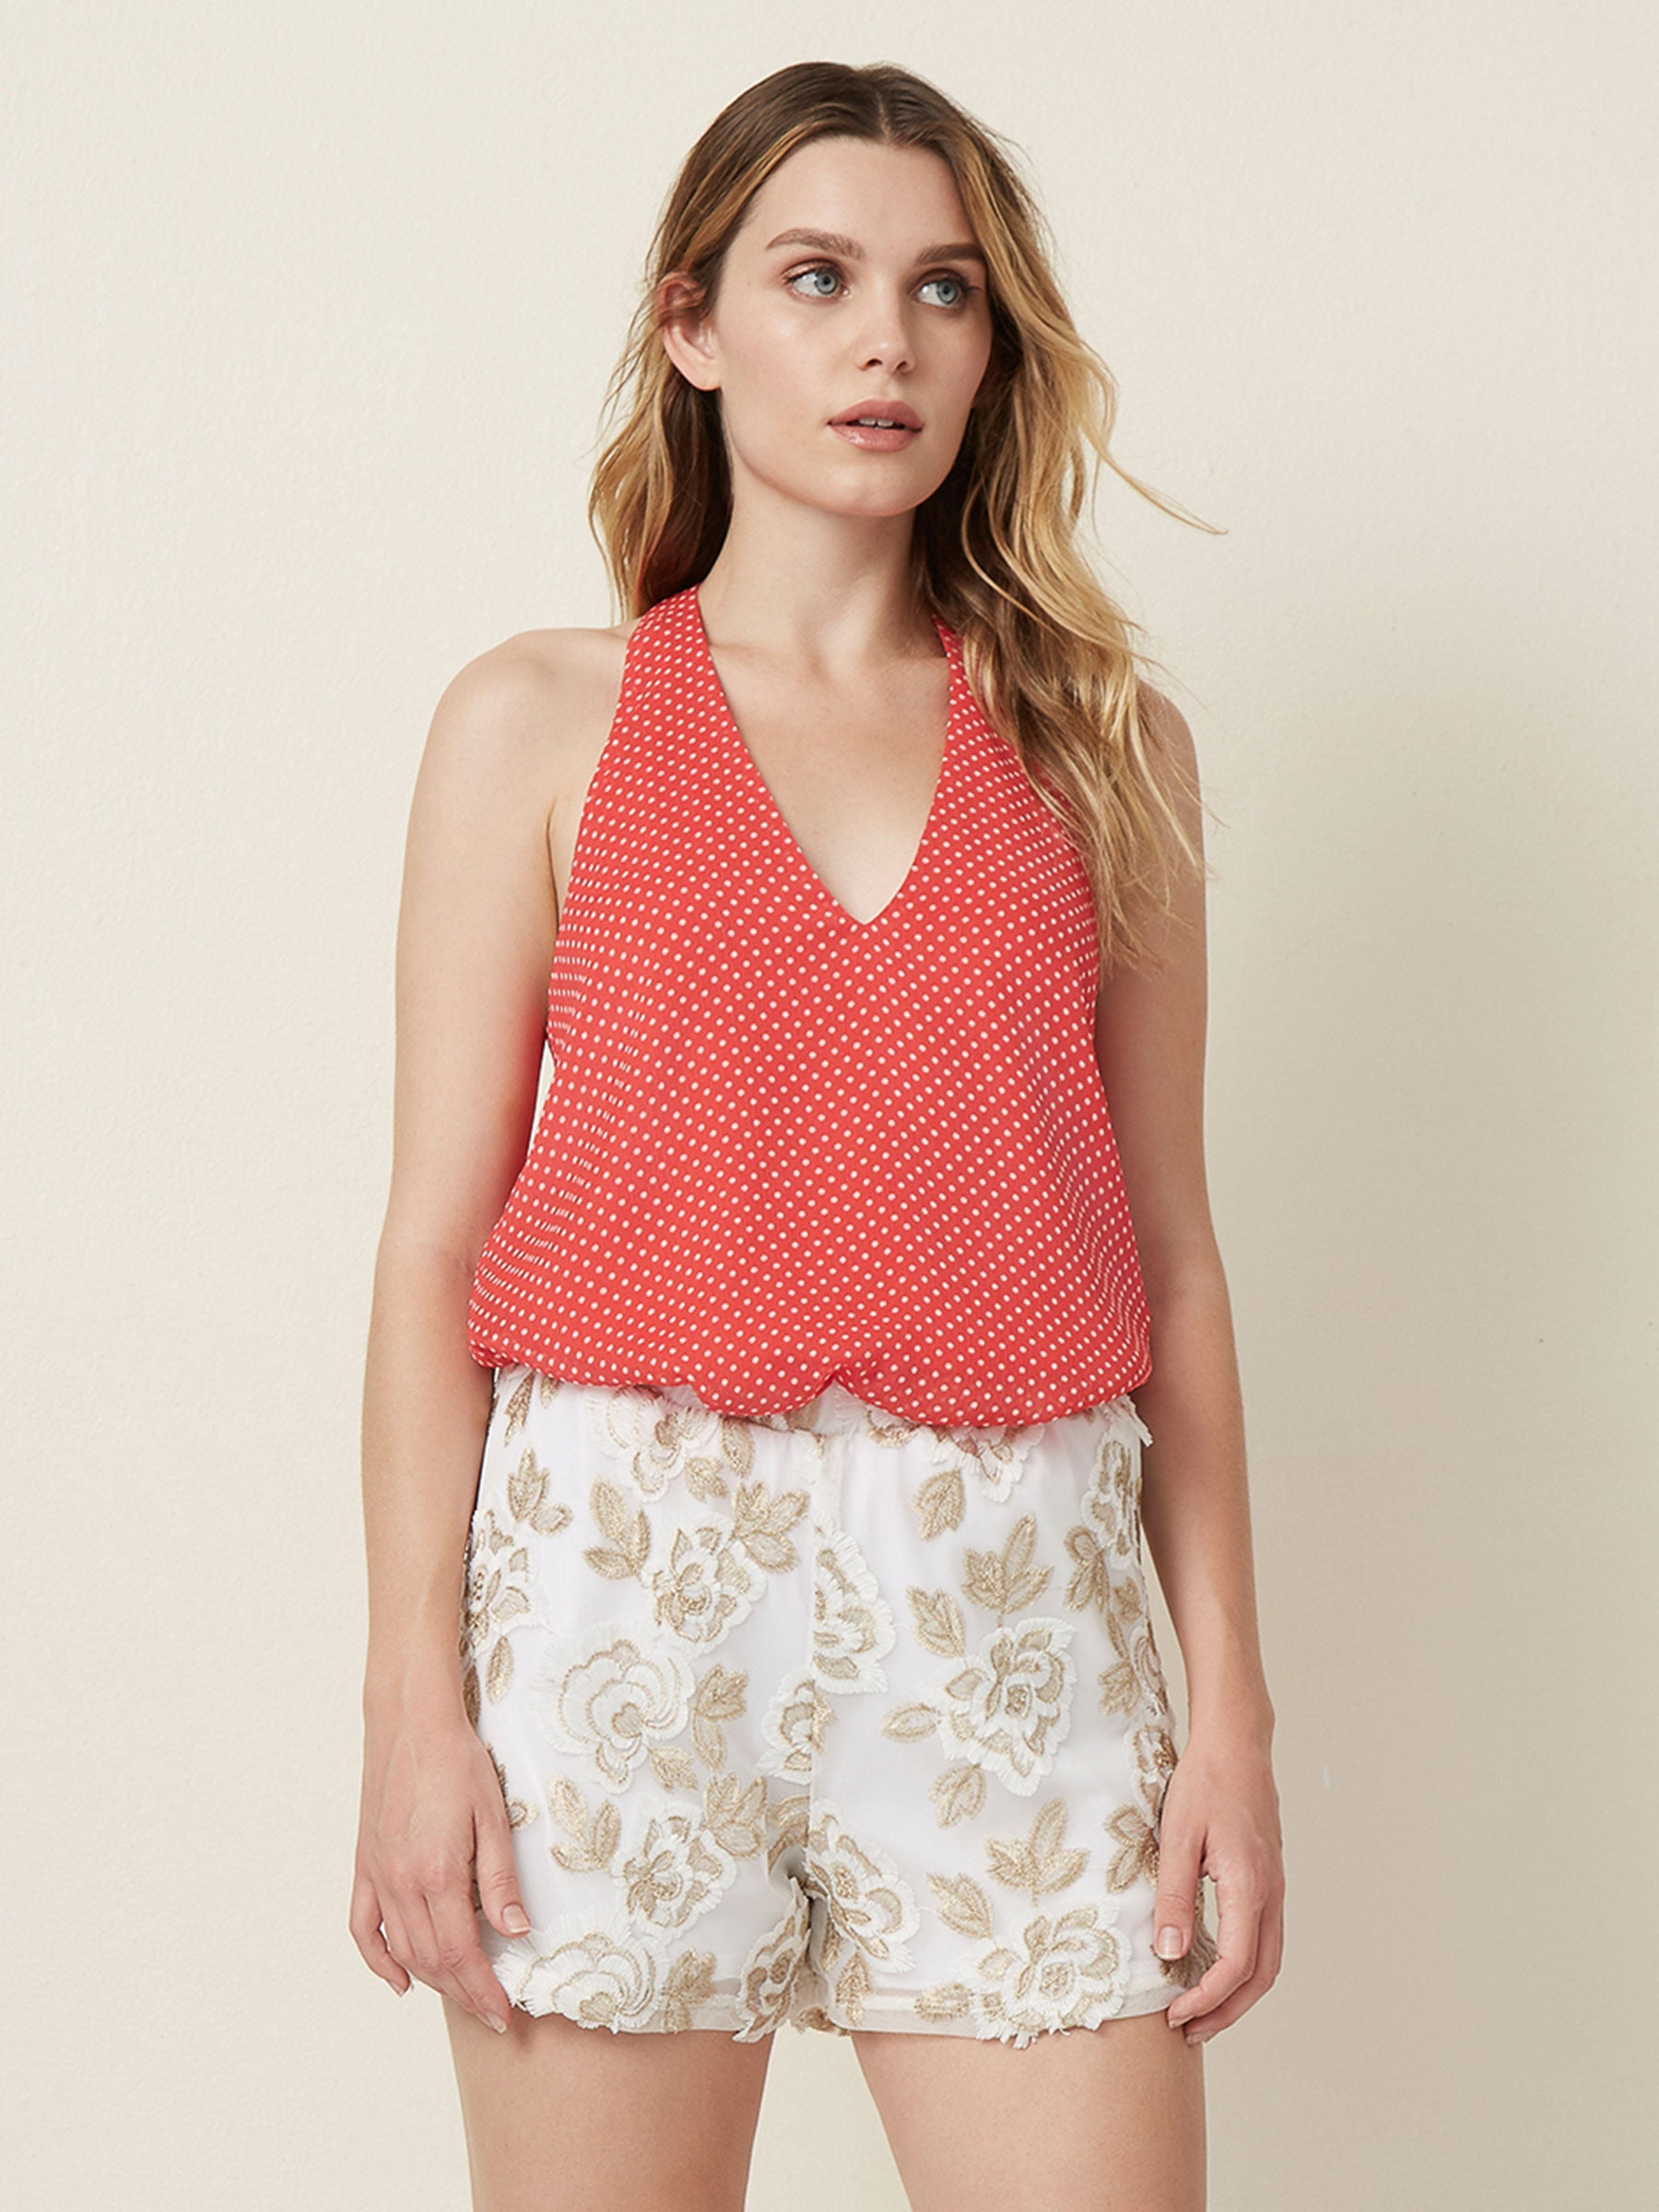 Tank top Racerback  Lined tank  printed tops  V neck tank  Layering tops Polka dots